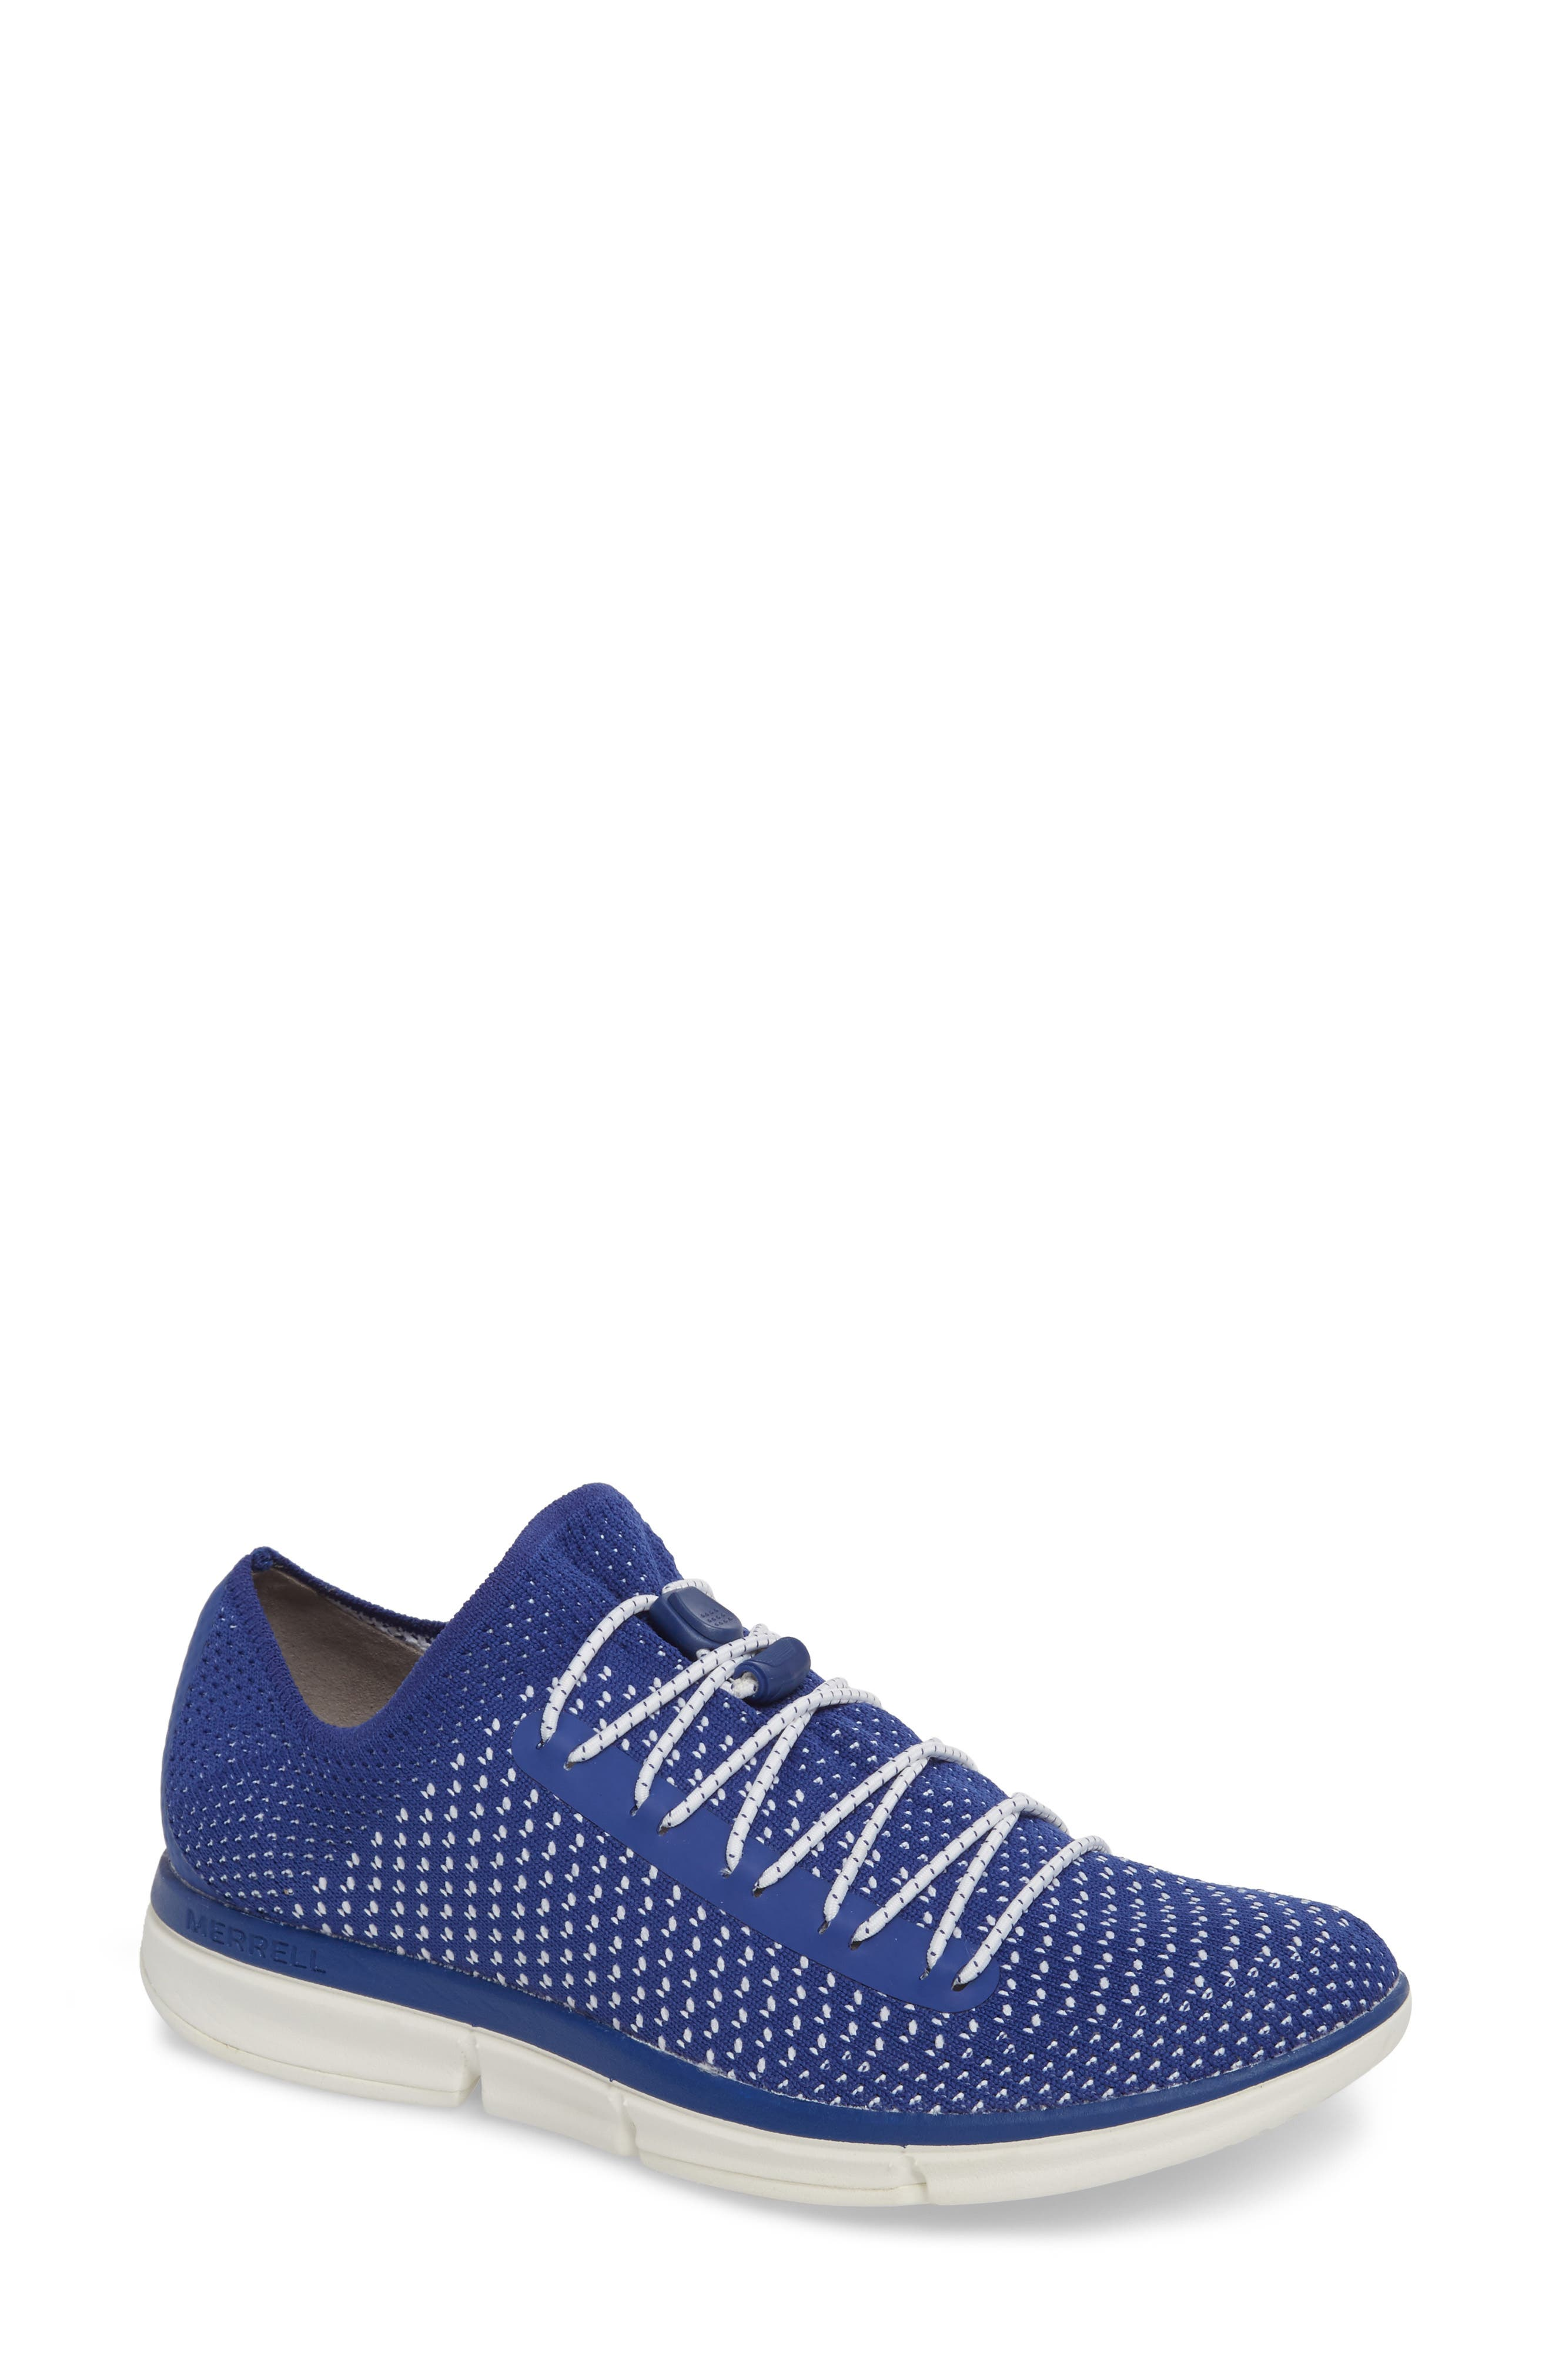 Zoe Sojourn Lace Knit Sneaker,                         Main,                         color, Sodalite